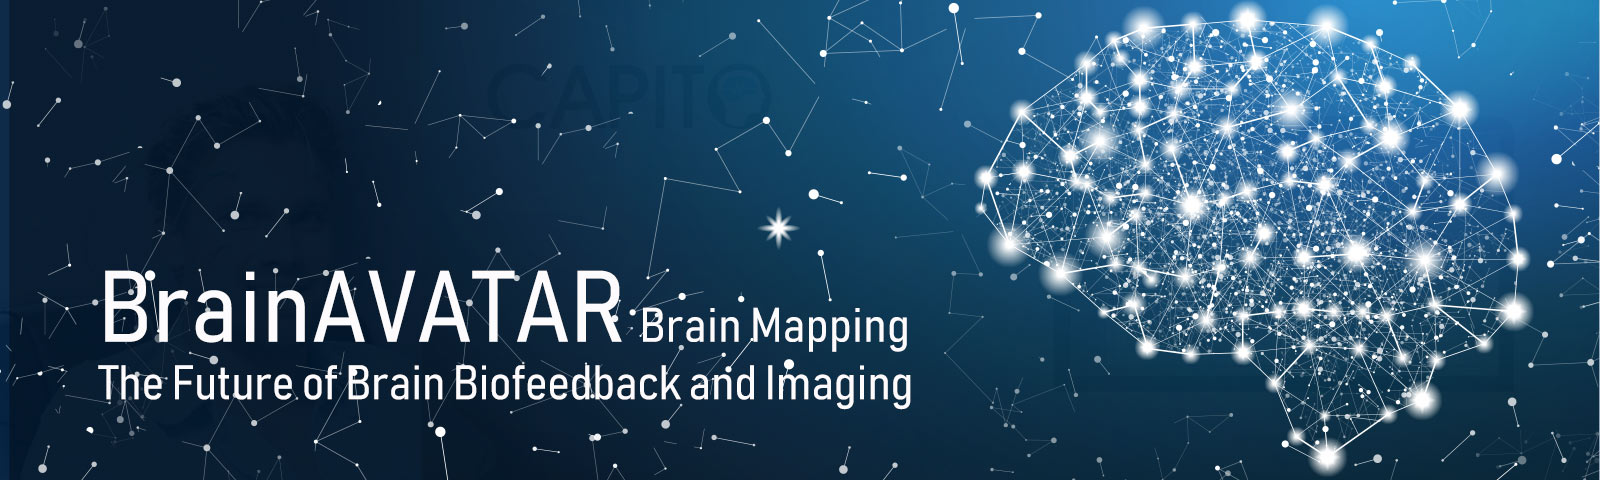 BrainAVATAR Brain Mapping - The Future of Brain Biofeedback and Imaging